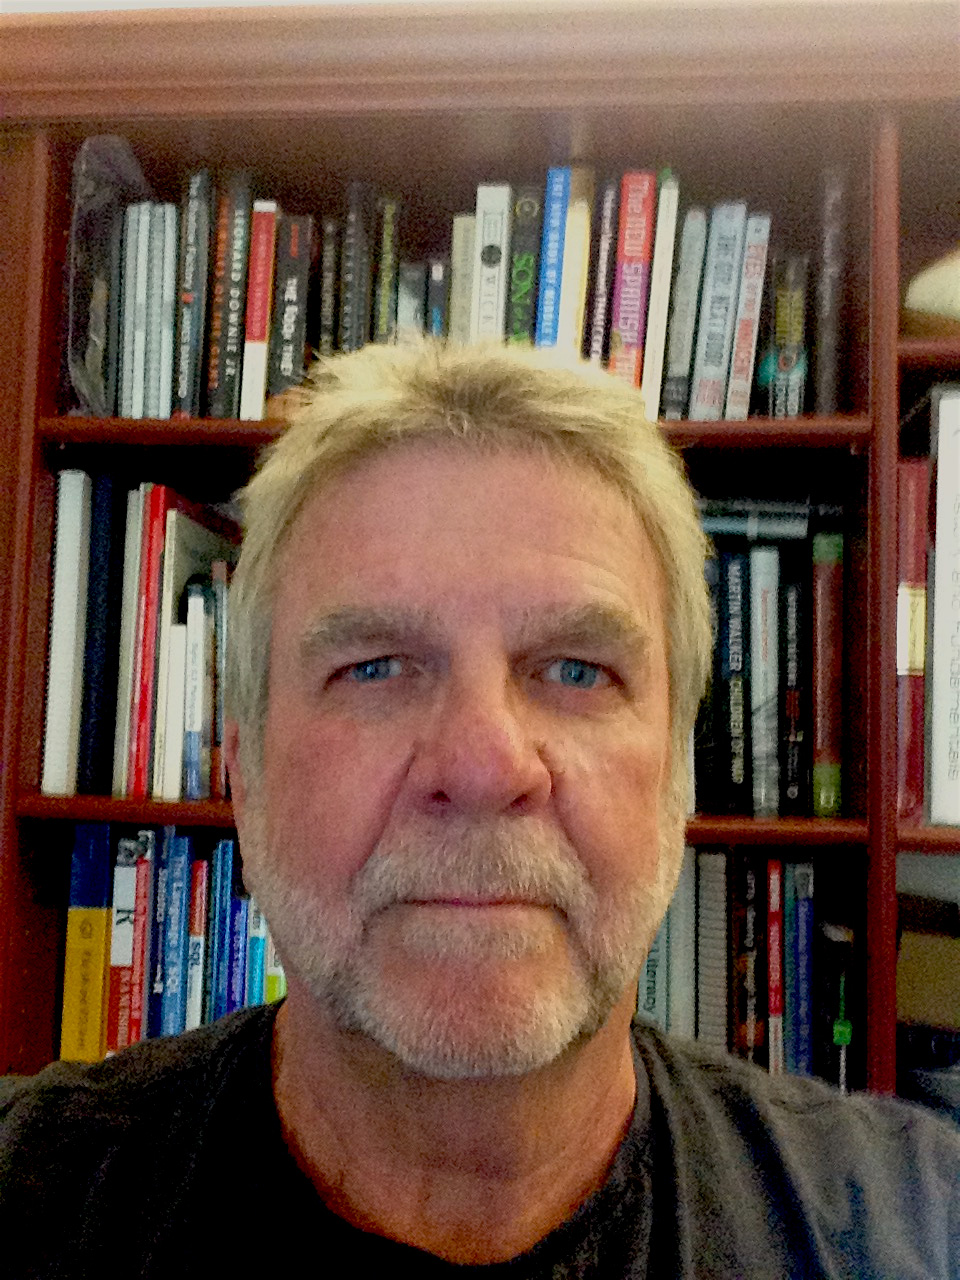 Steve Doig - @sdoigSteve Doig was the founding Knight Chair in Journalism, specializing in data reporting, at the Walter Cronkite School of Journalism of Arizona State University. Before joining ASU in 1996, he was Associate Editor/Research of the Miami Herald, where he worked for 20 years. Various data analysis projects on which he worked at The Herald and at ASU have won the Pulitzer Prize for Public Service, the Investigative Reporters & Editors Award, the Goldsmith Prize for Investigative Reporting, the George Polk Award for Medical Reporting, and other recognition. He has done dozens of data workshops for journalists around the world.